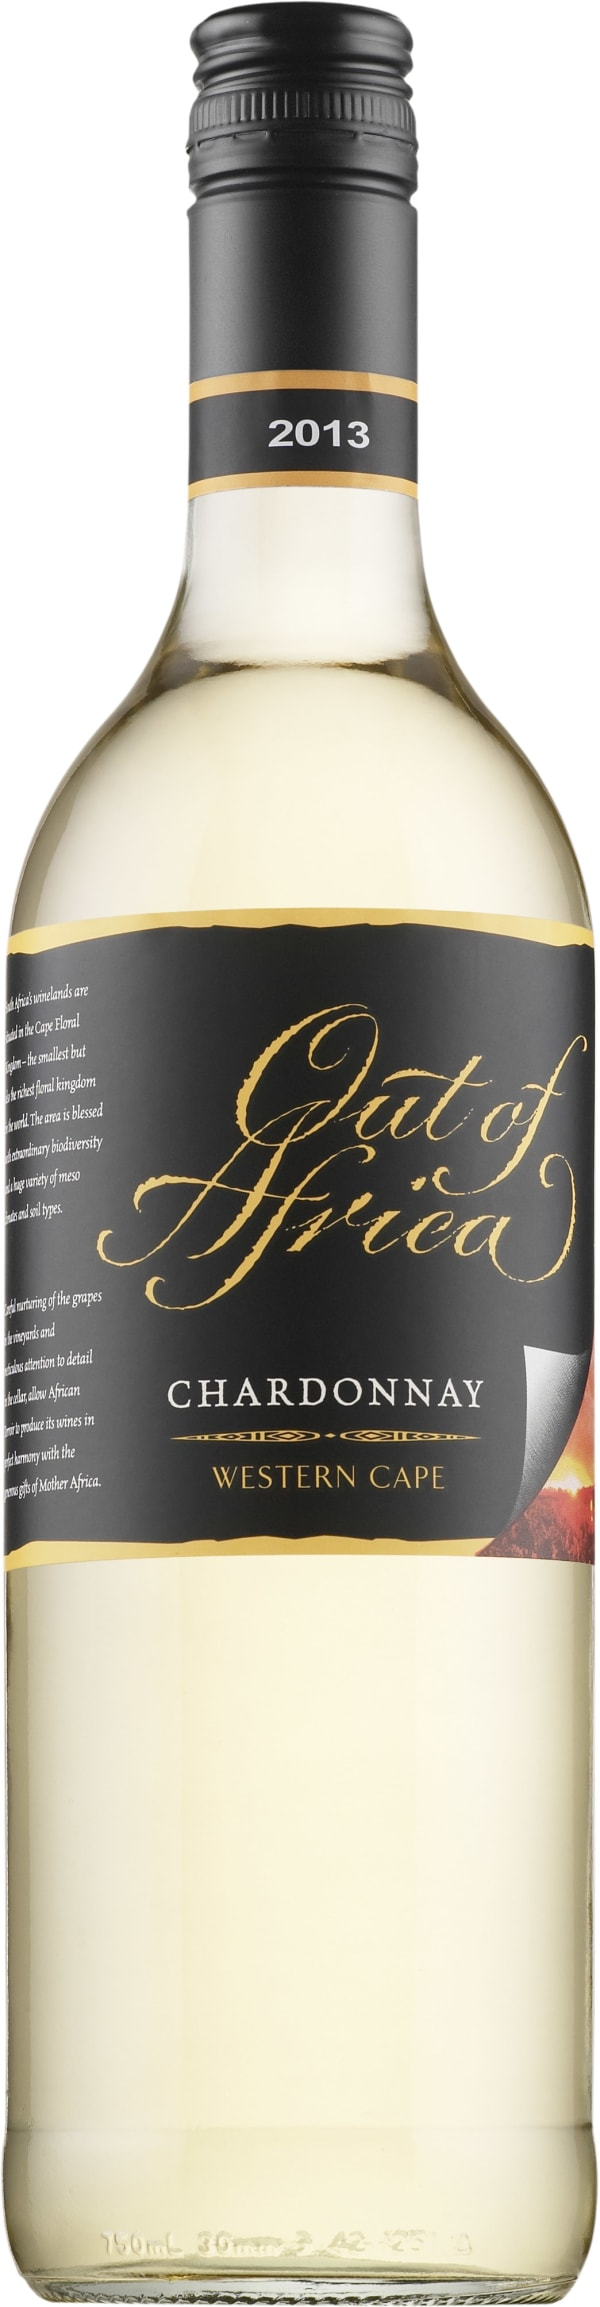 Out of Africa Chardonnay 2015